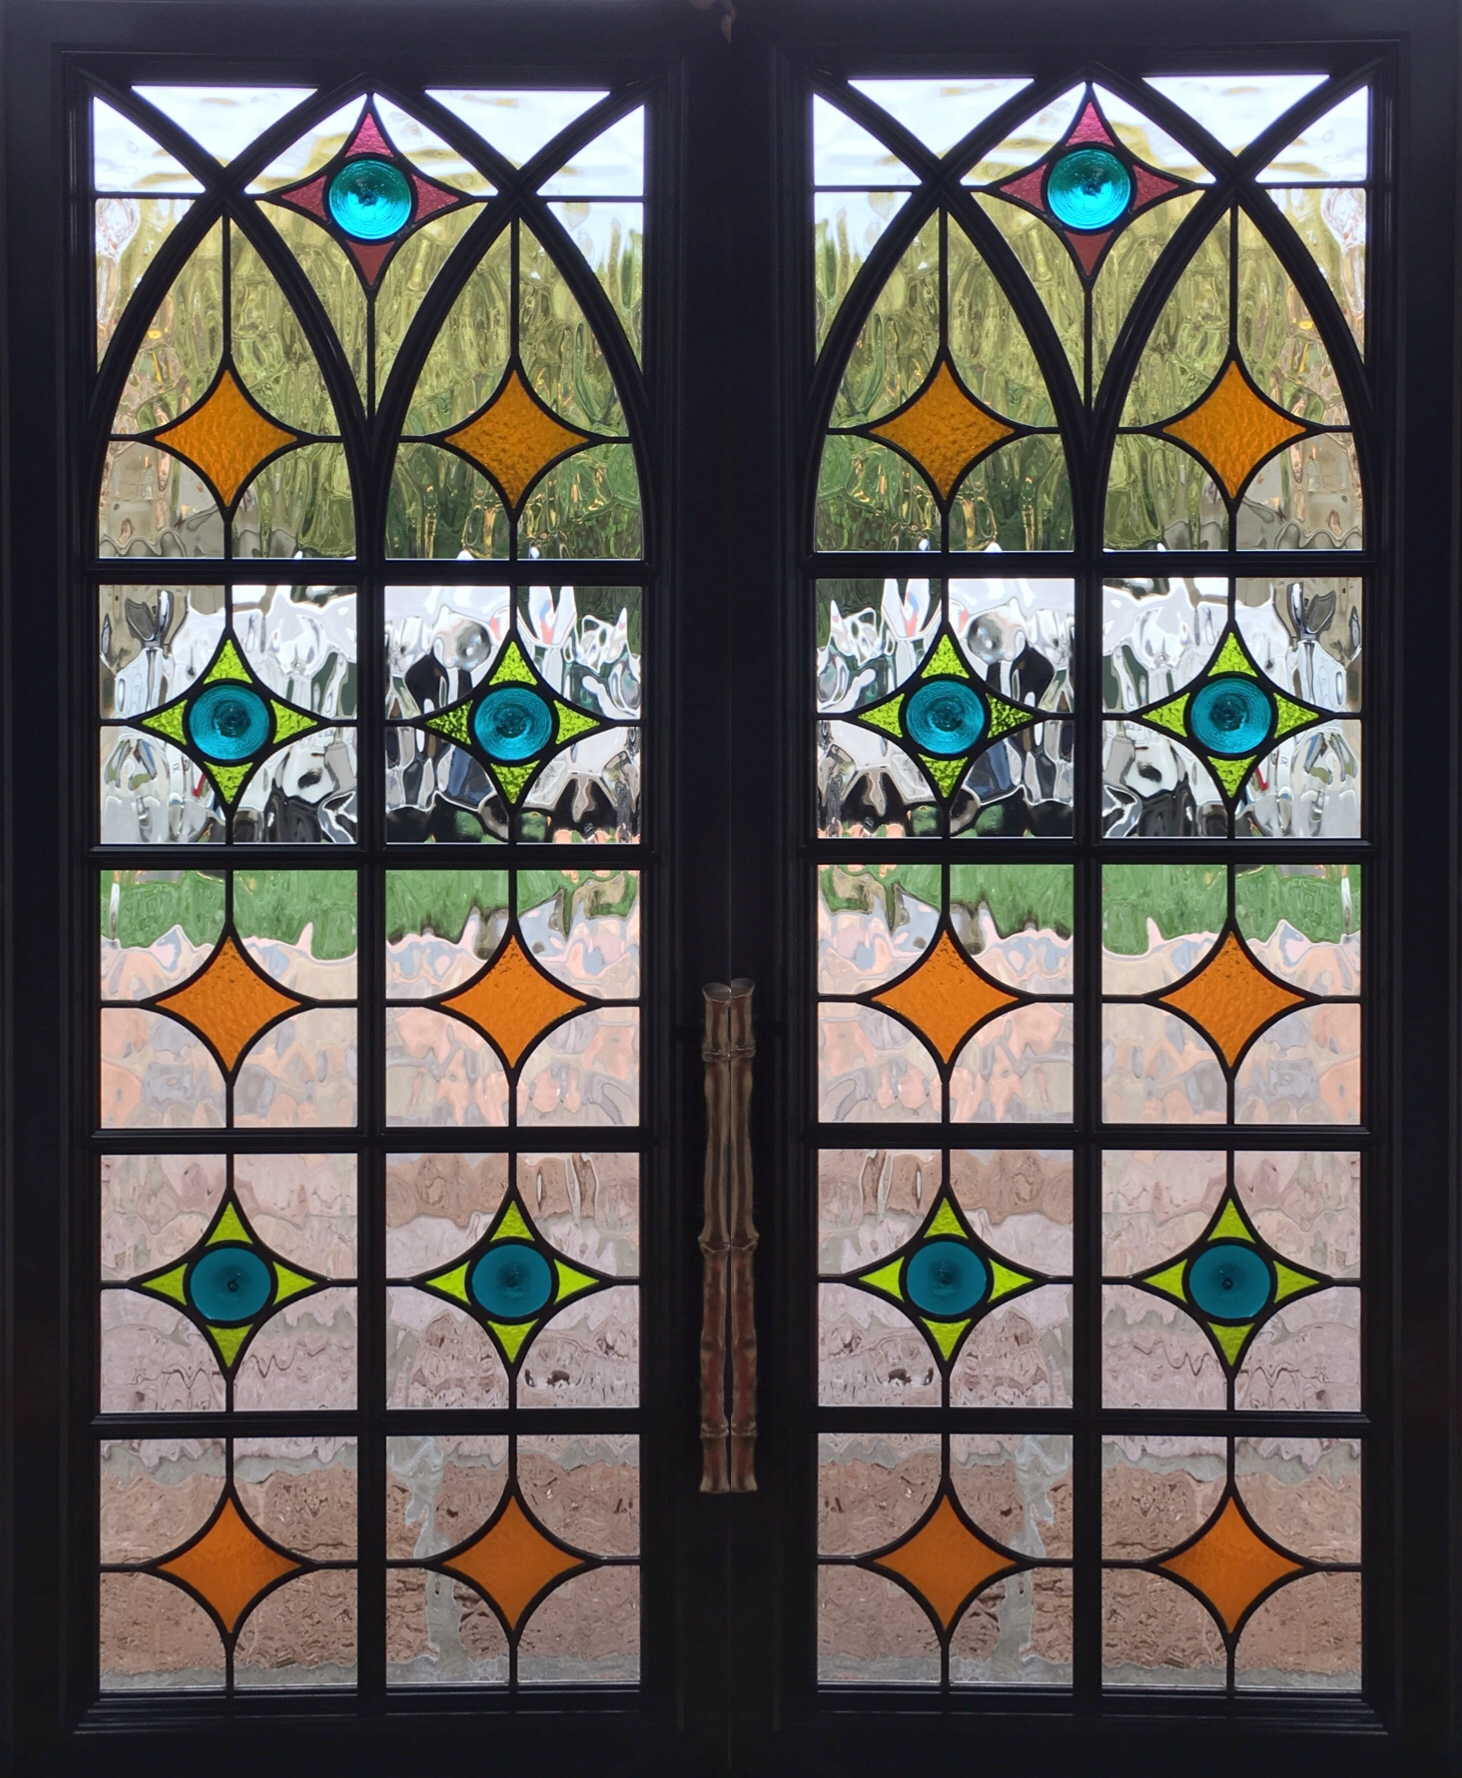 stained glass leaded glass design legacy glass studios menlo park bay area california custom design rondels spanish influence interior design arched cabinet glass.JPG